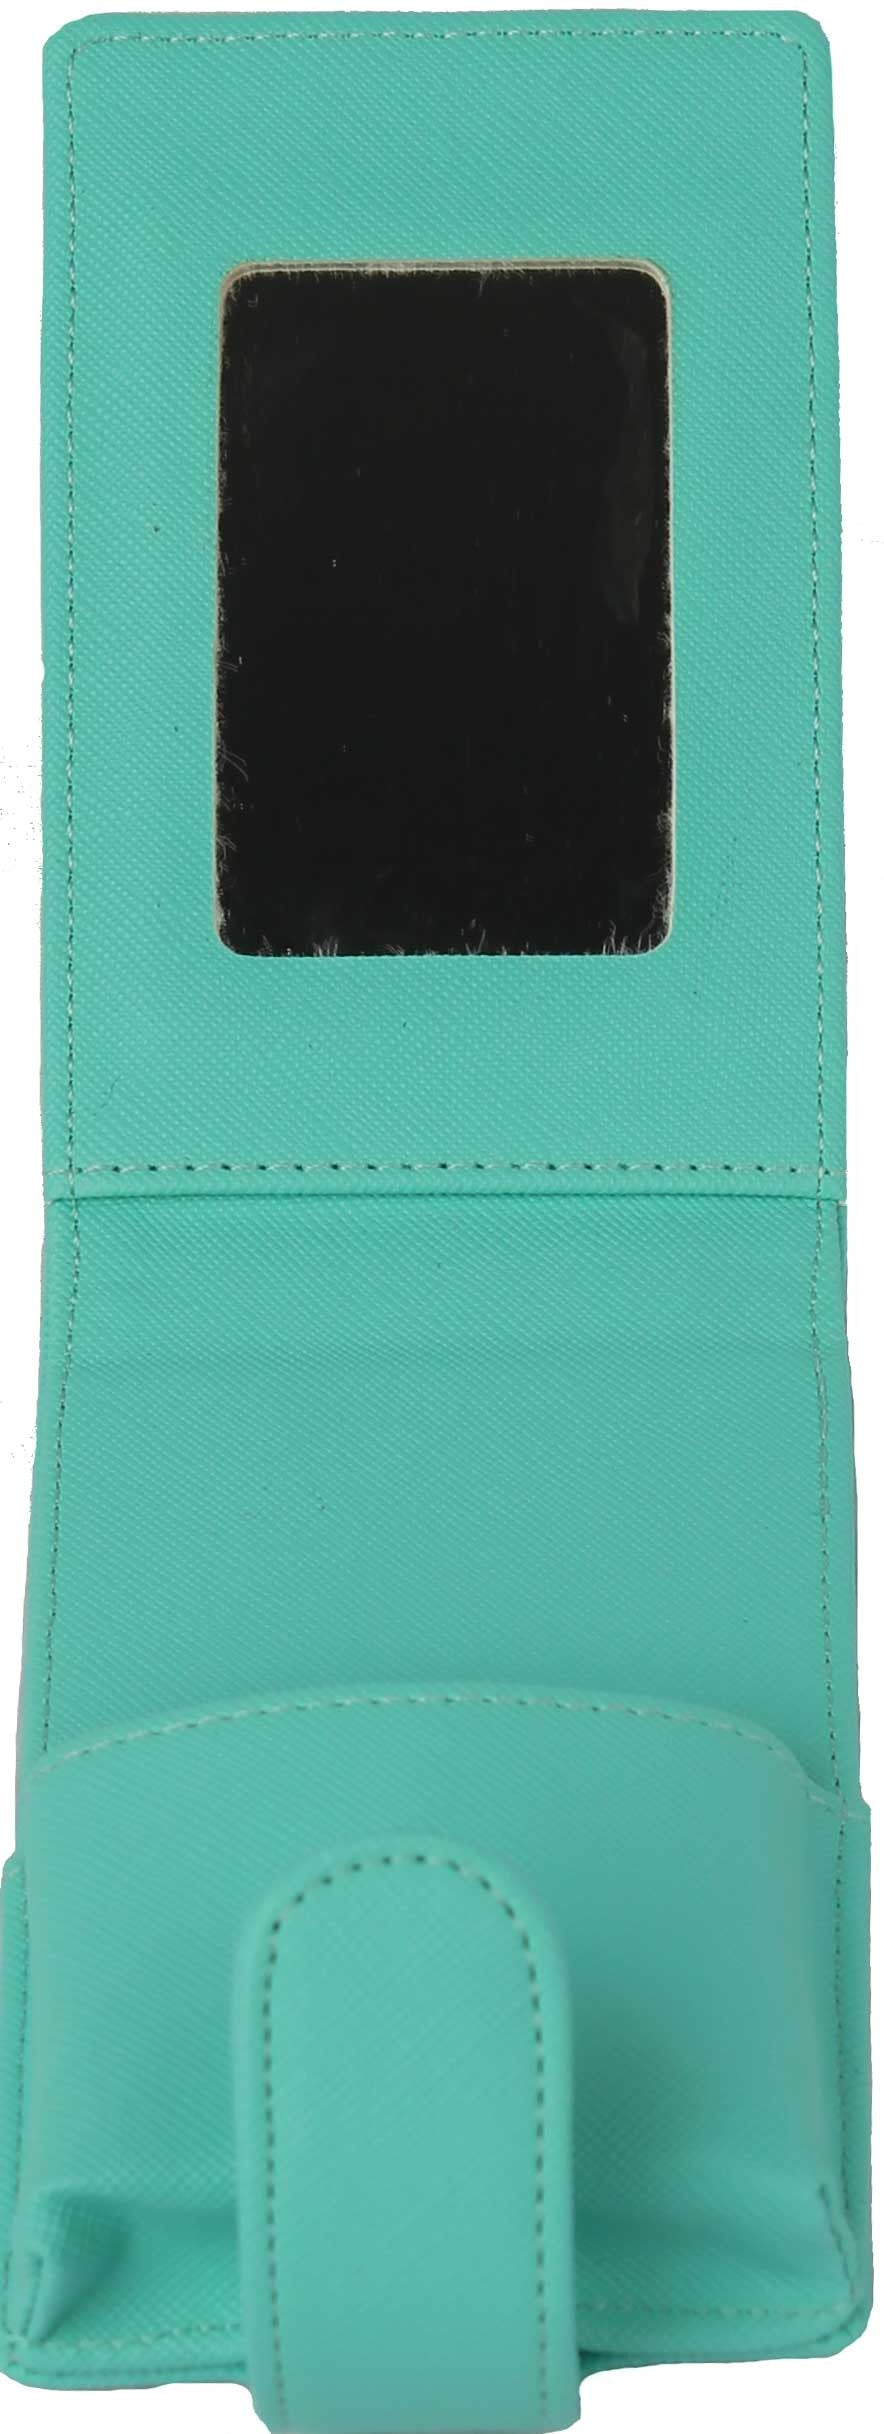 Lipstick Lip Gloss Pouch Carrying Case Aqua